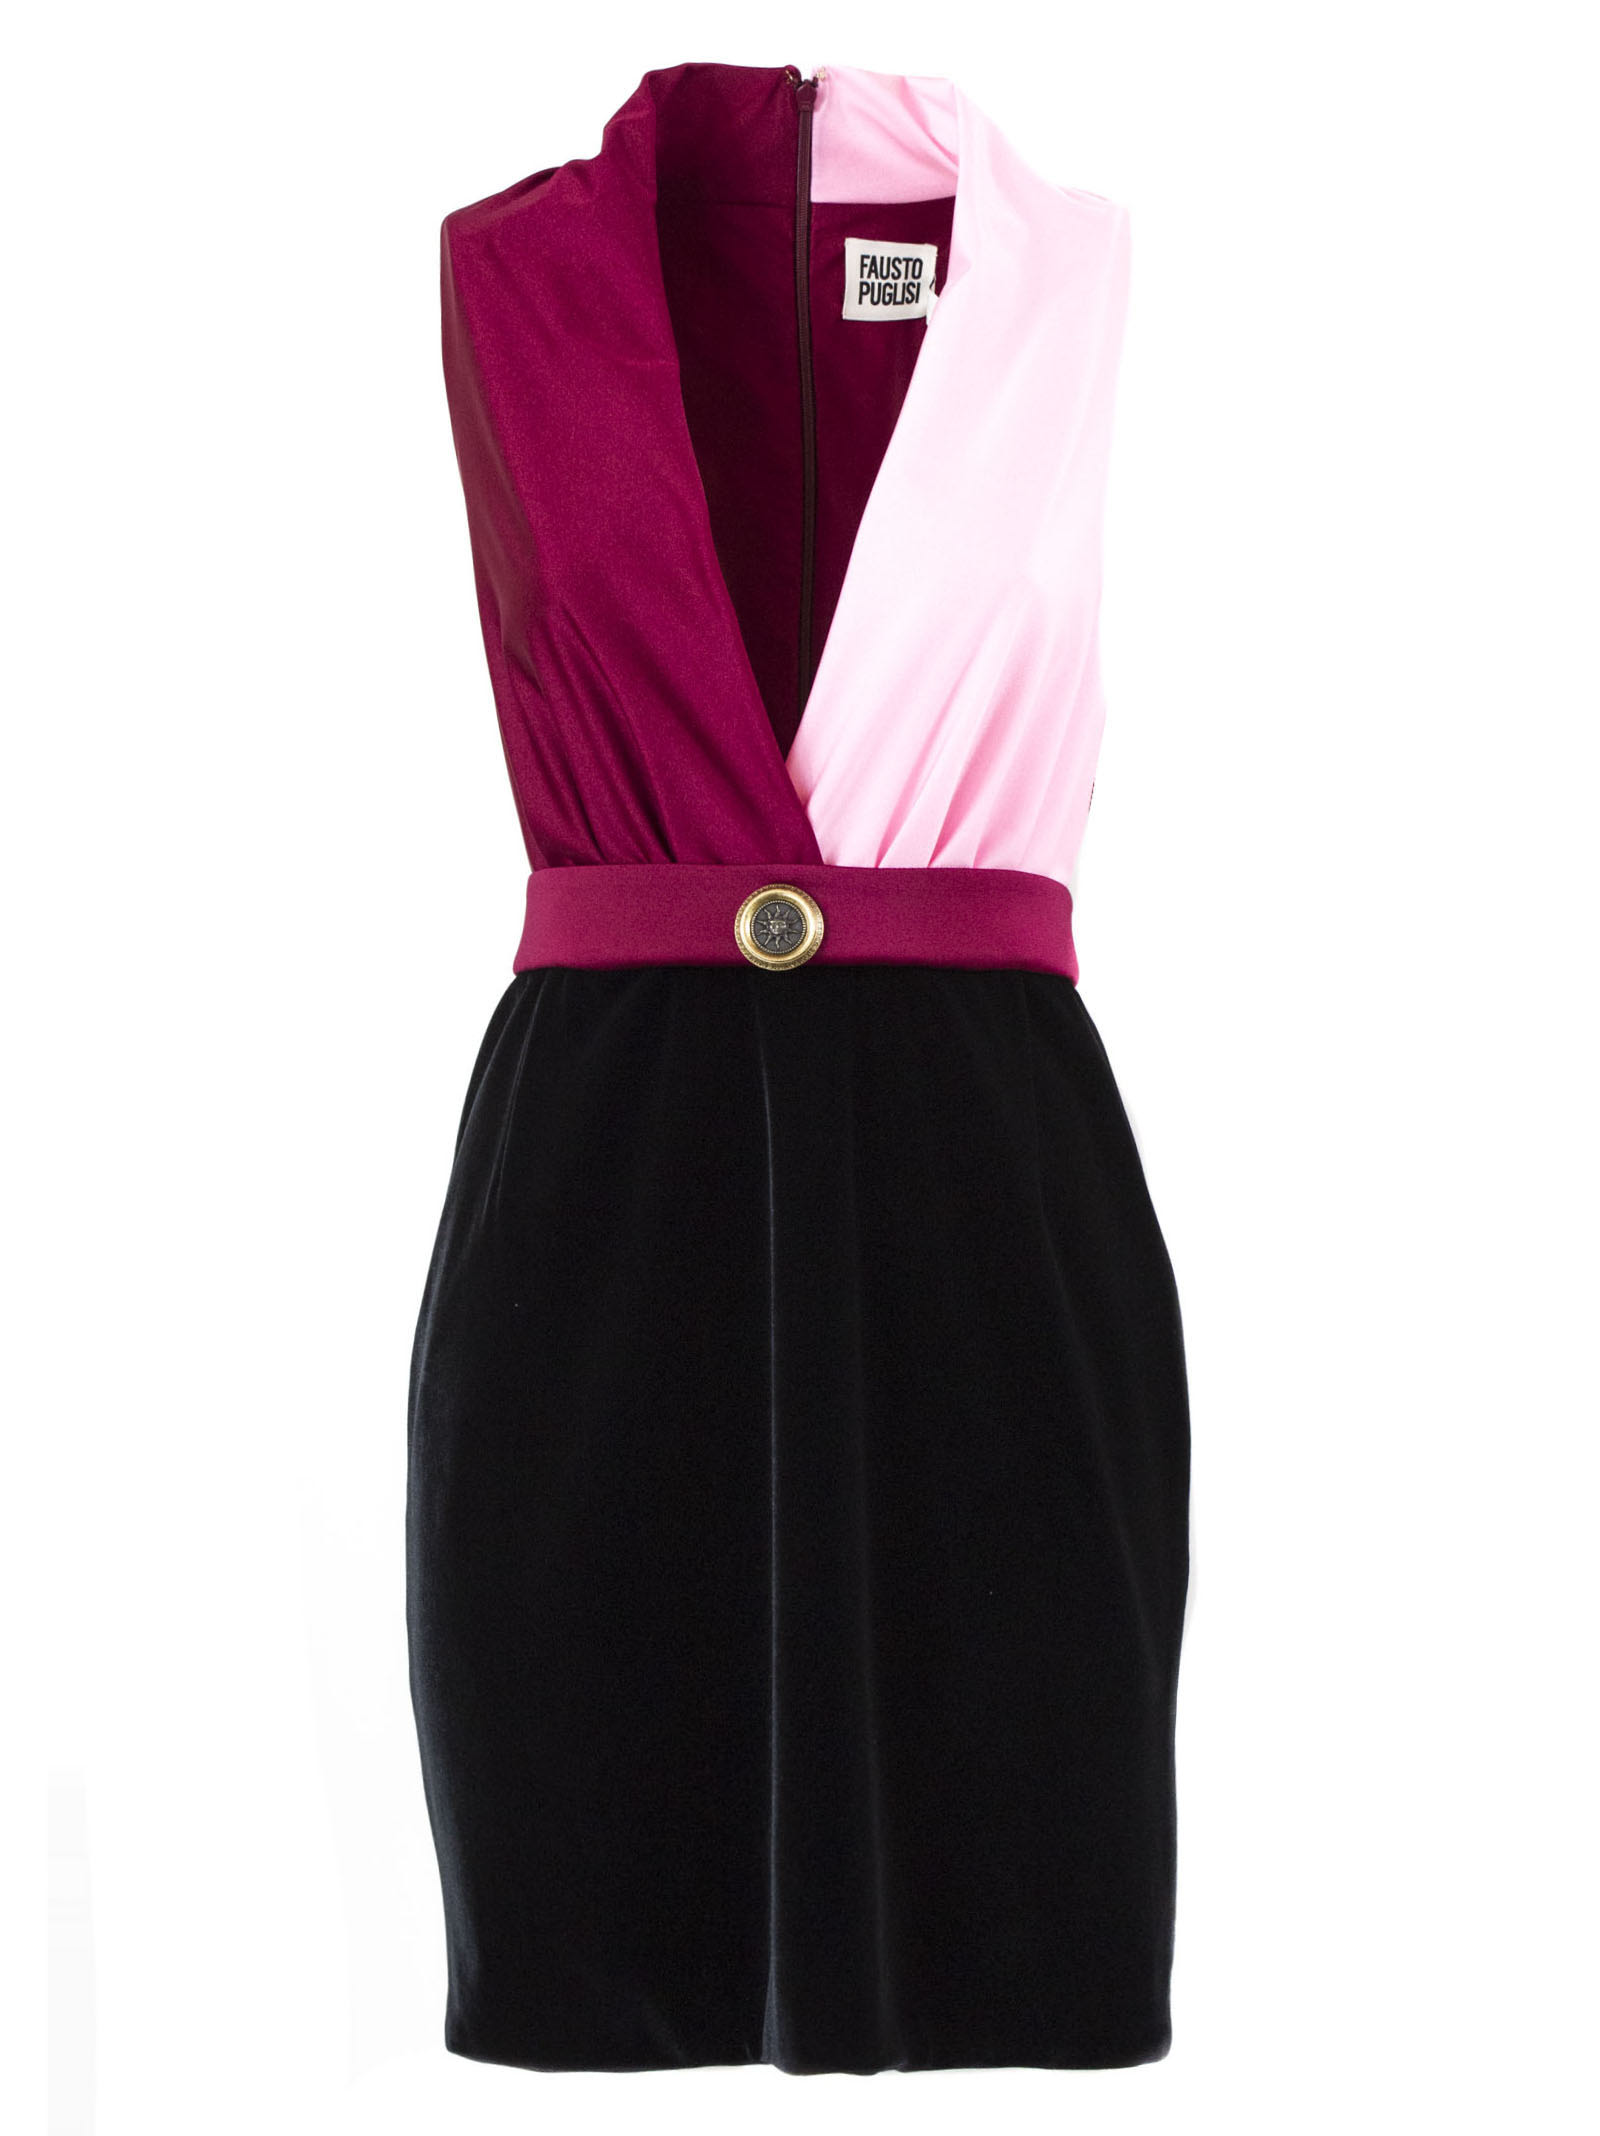 Fausto Puglisi Dress In Pink, Red And Black Fabric